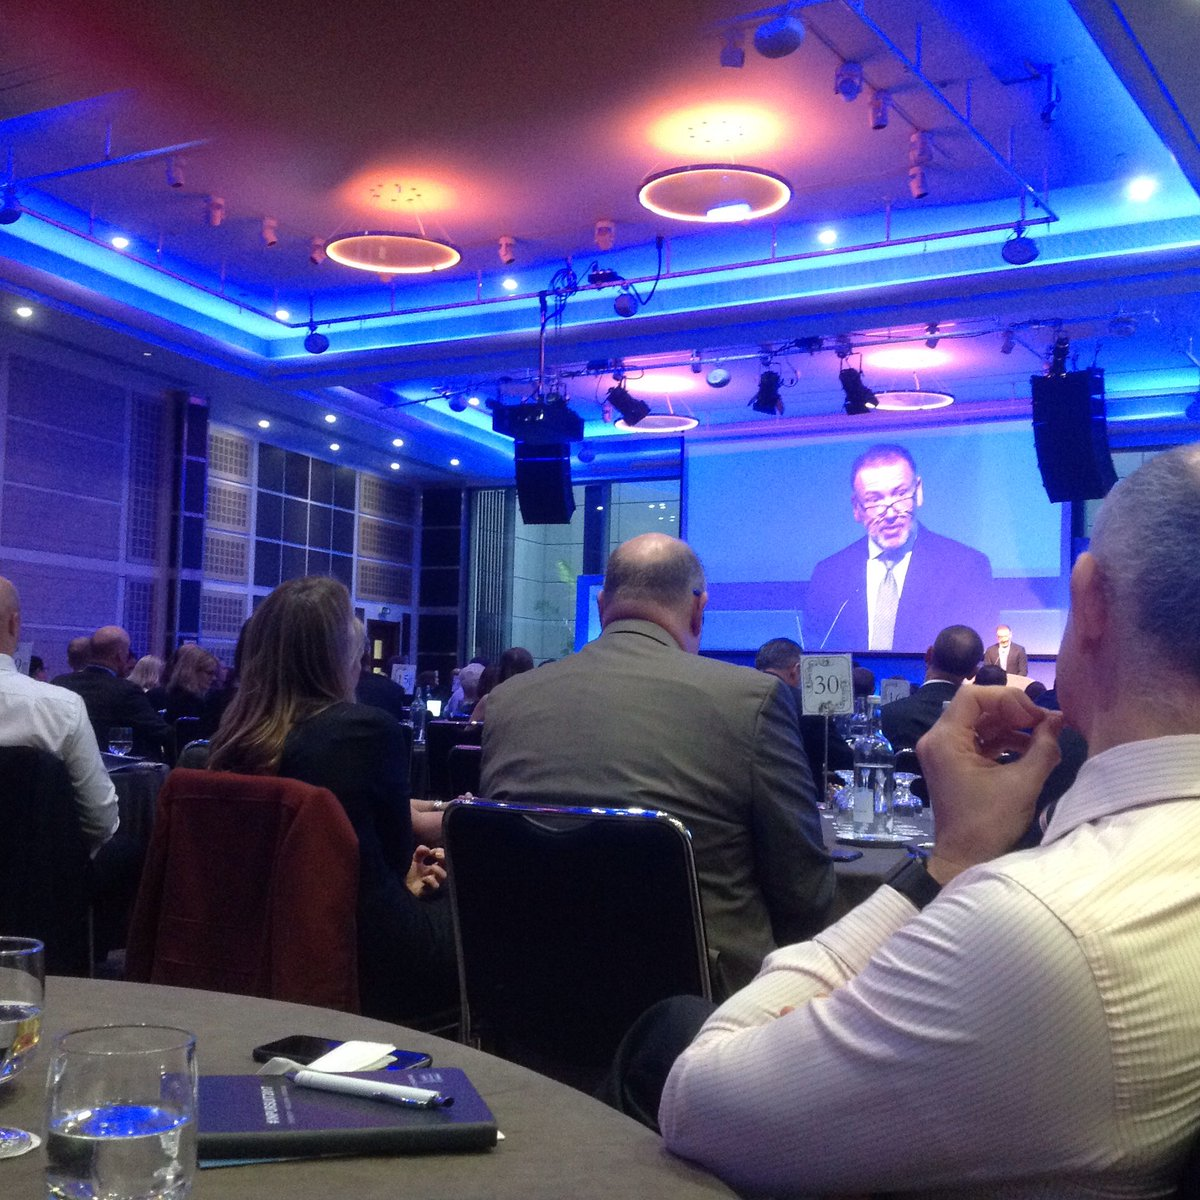 Mike Nigro sets scene at #inpursuit2017 complete with purple tie #just #saying delighted to join you @mypurplespace @DisabilitySmart<br>http://pic.twitter.com/Mw8XfDYvXP